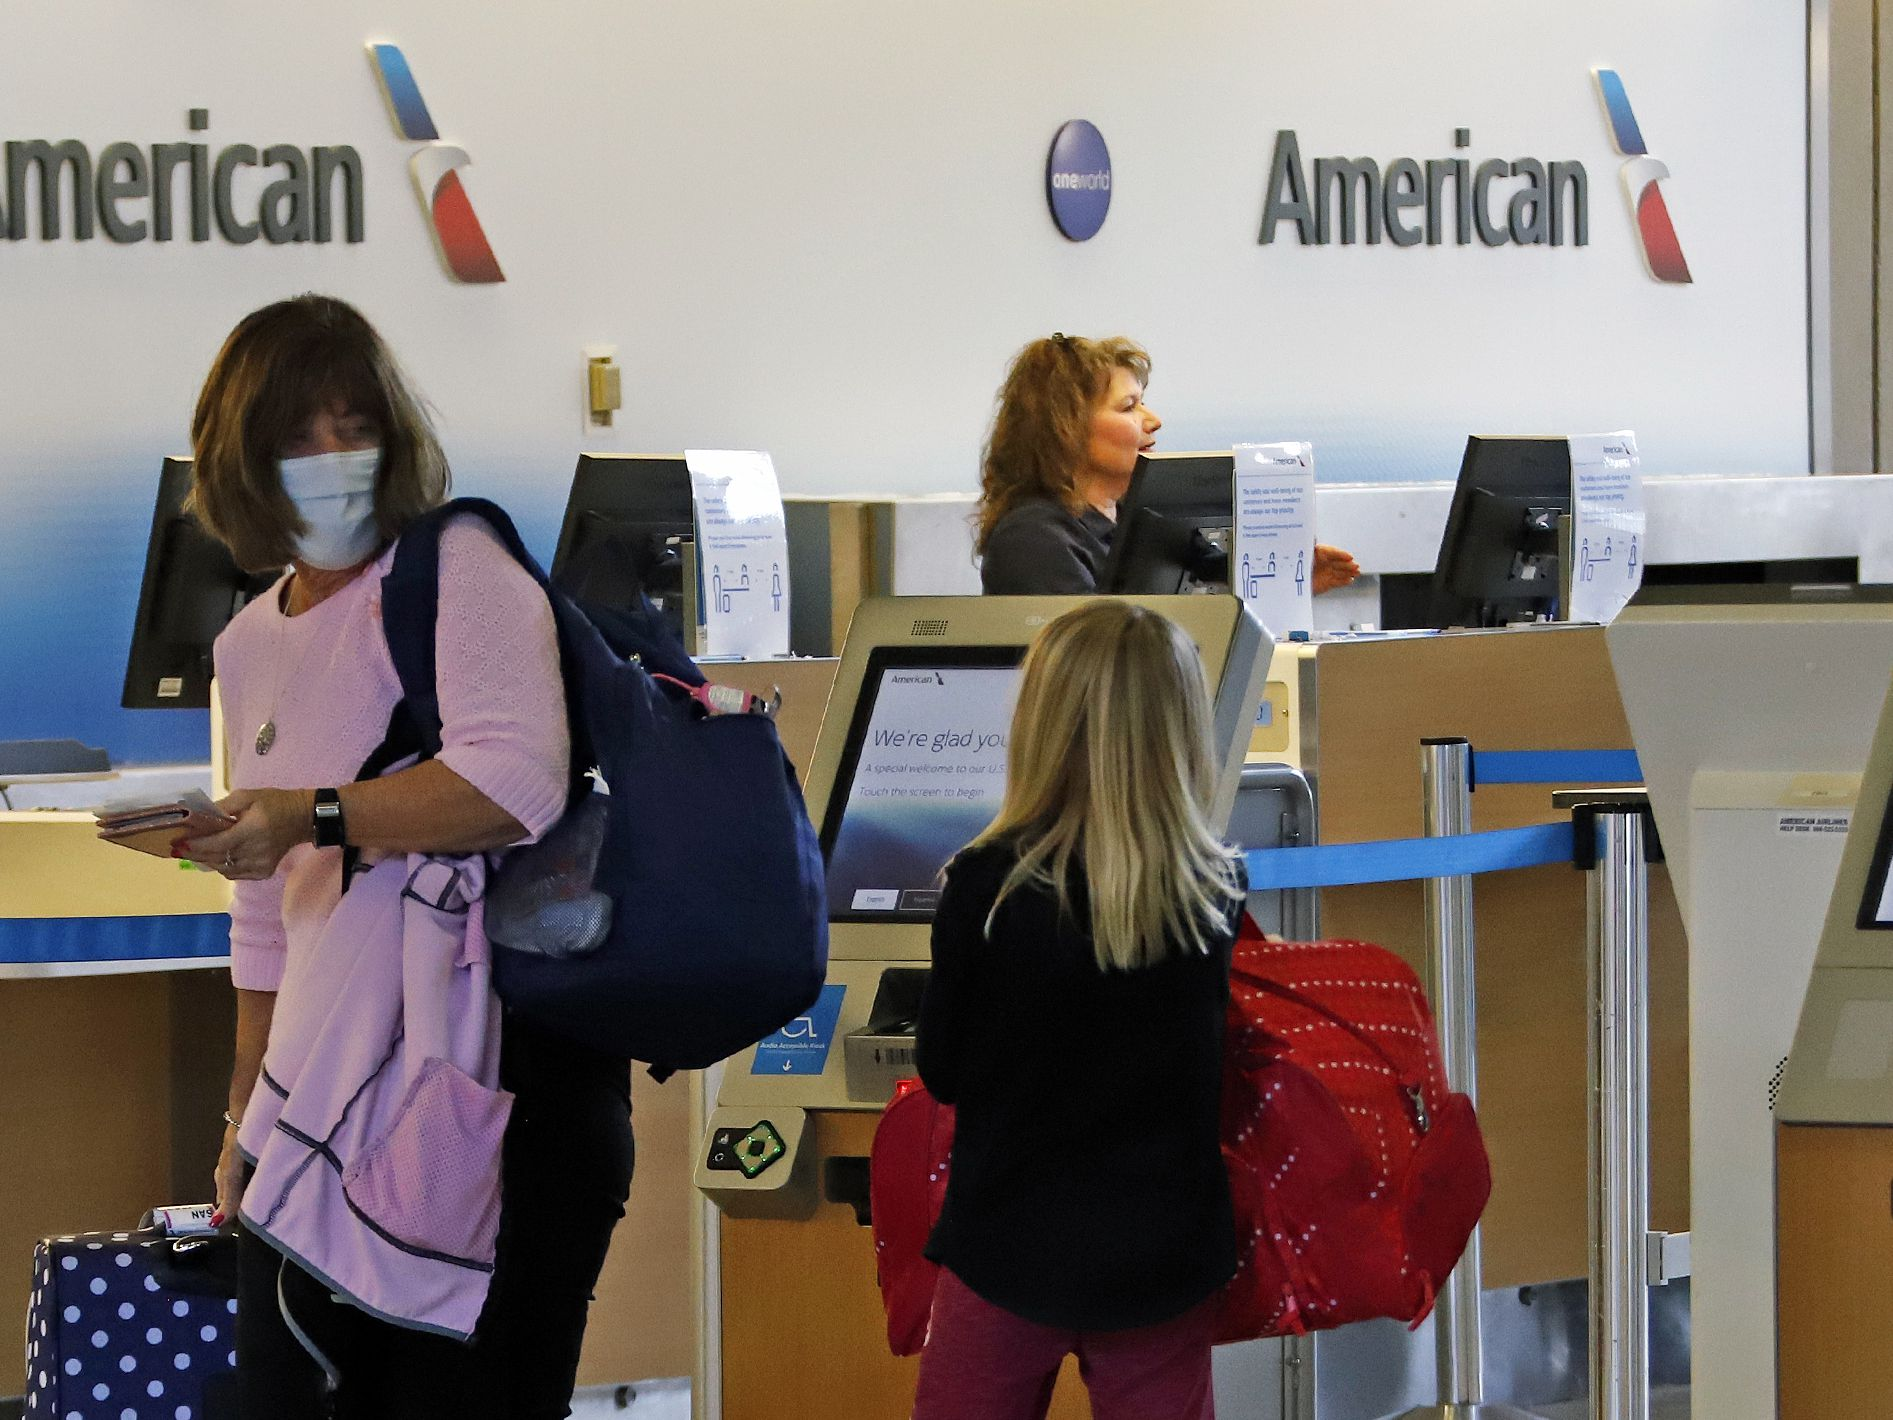 Airline denies mom and son, 2, after he refused to wear mask